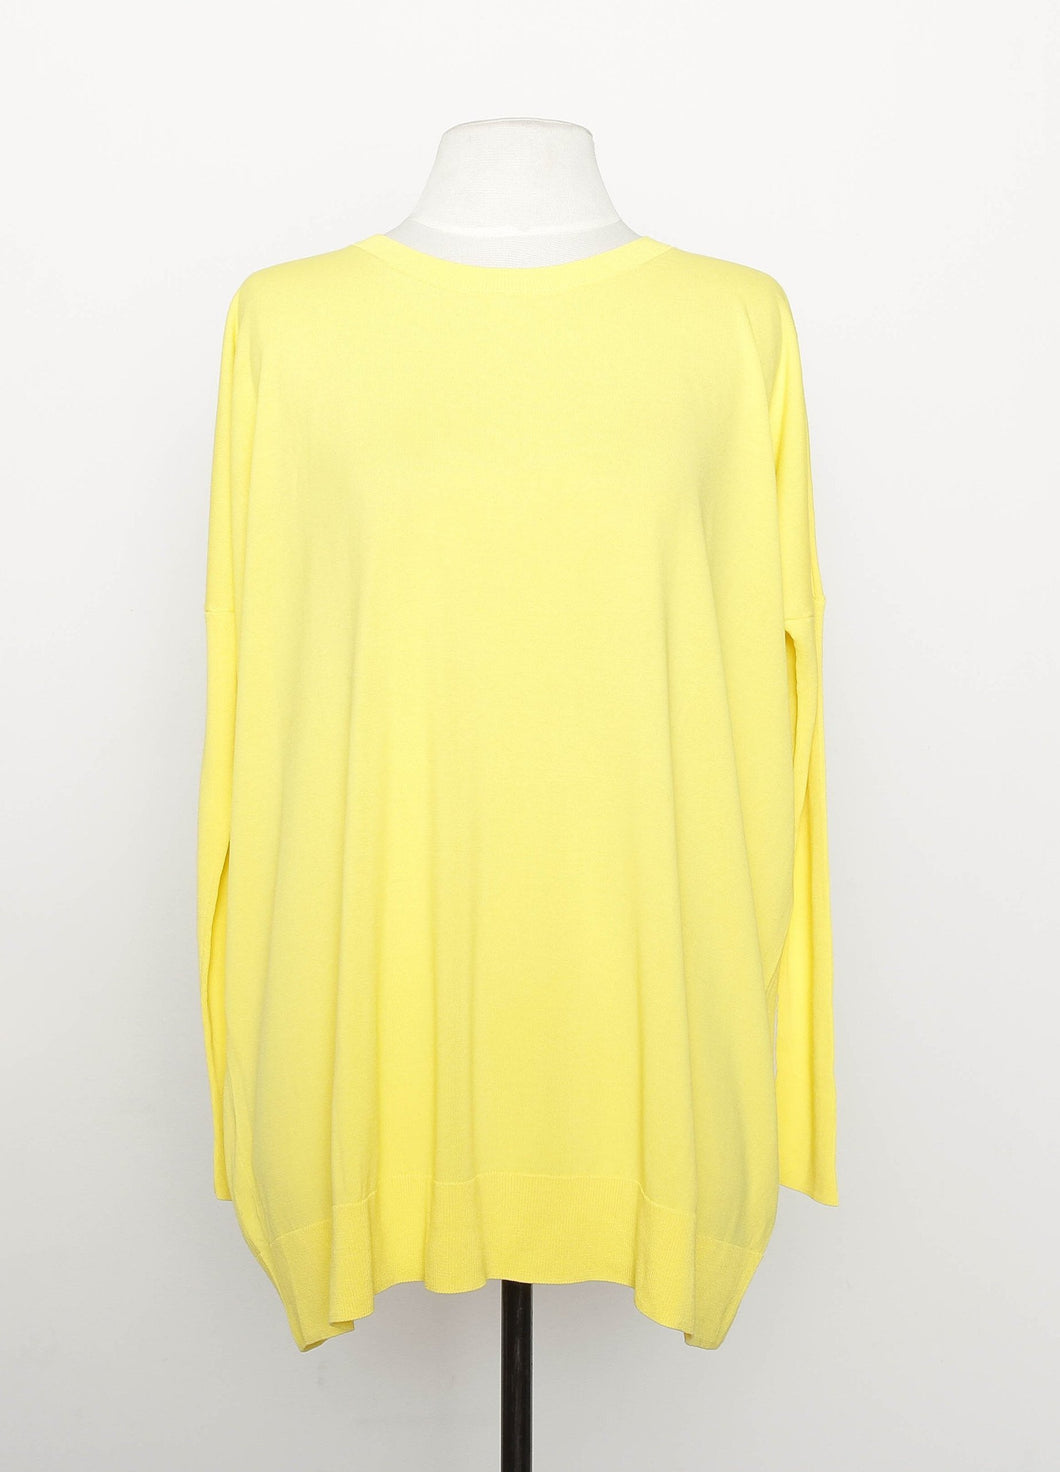 COS Yellow Oversized Sweater